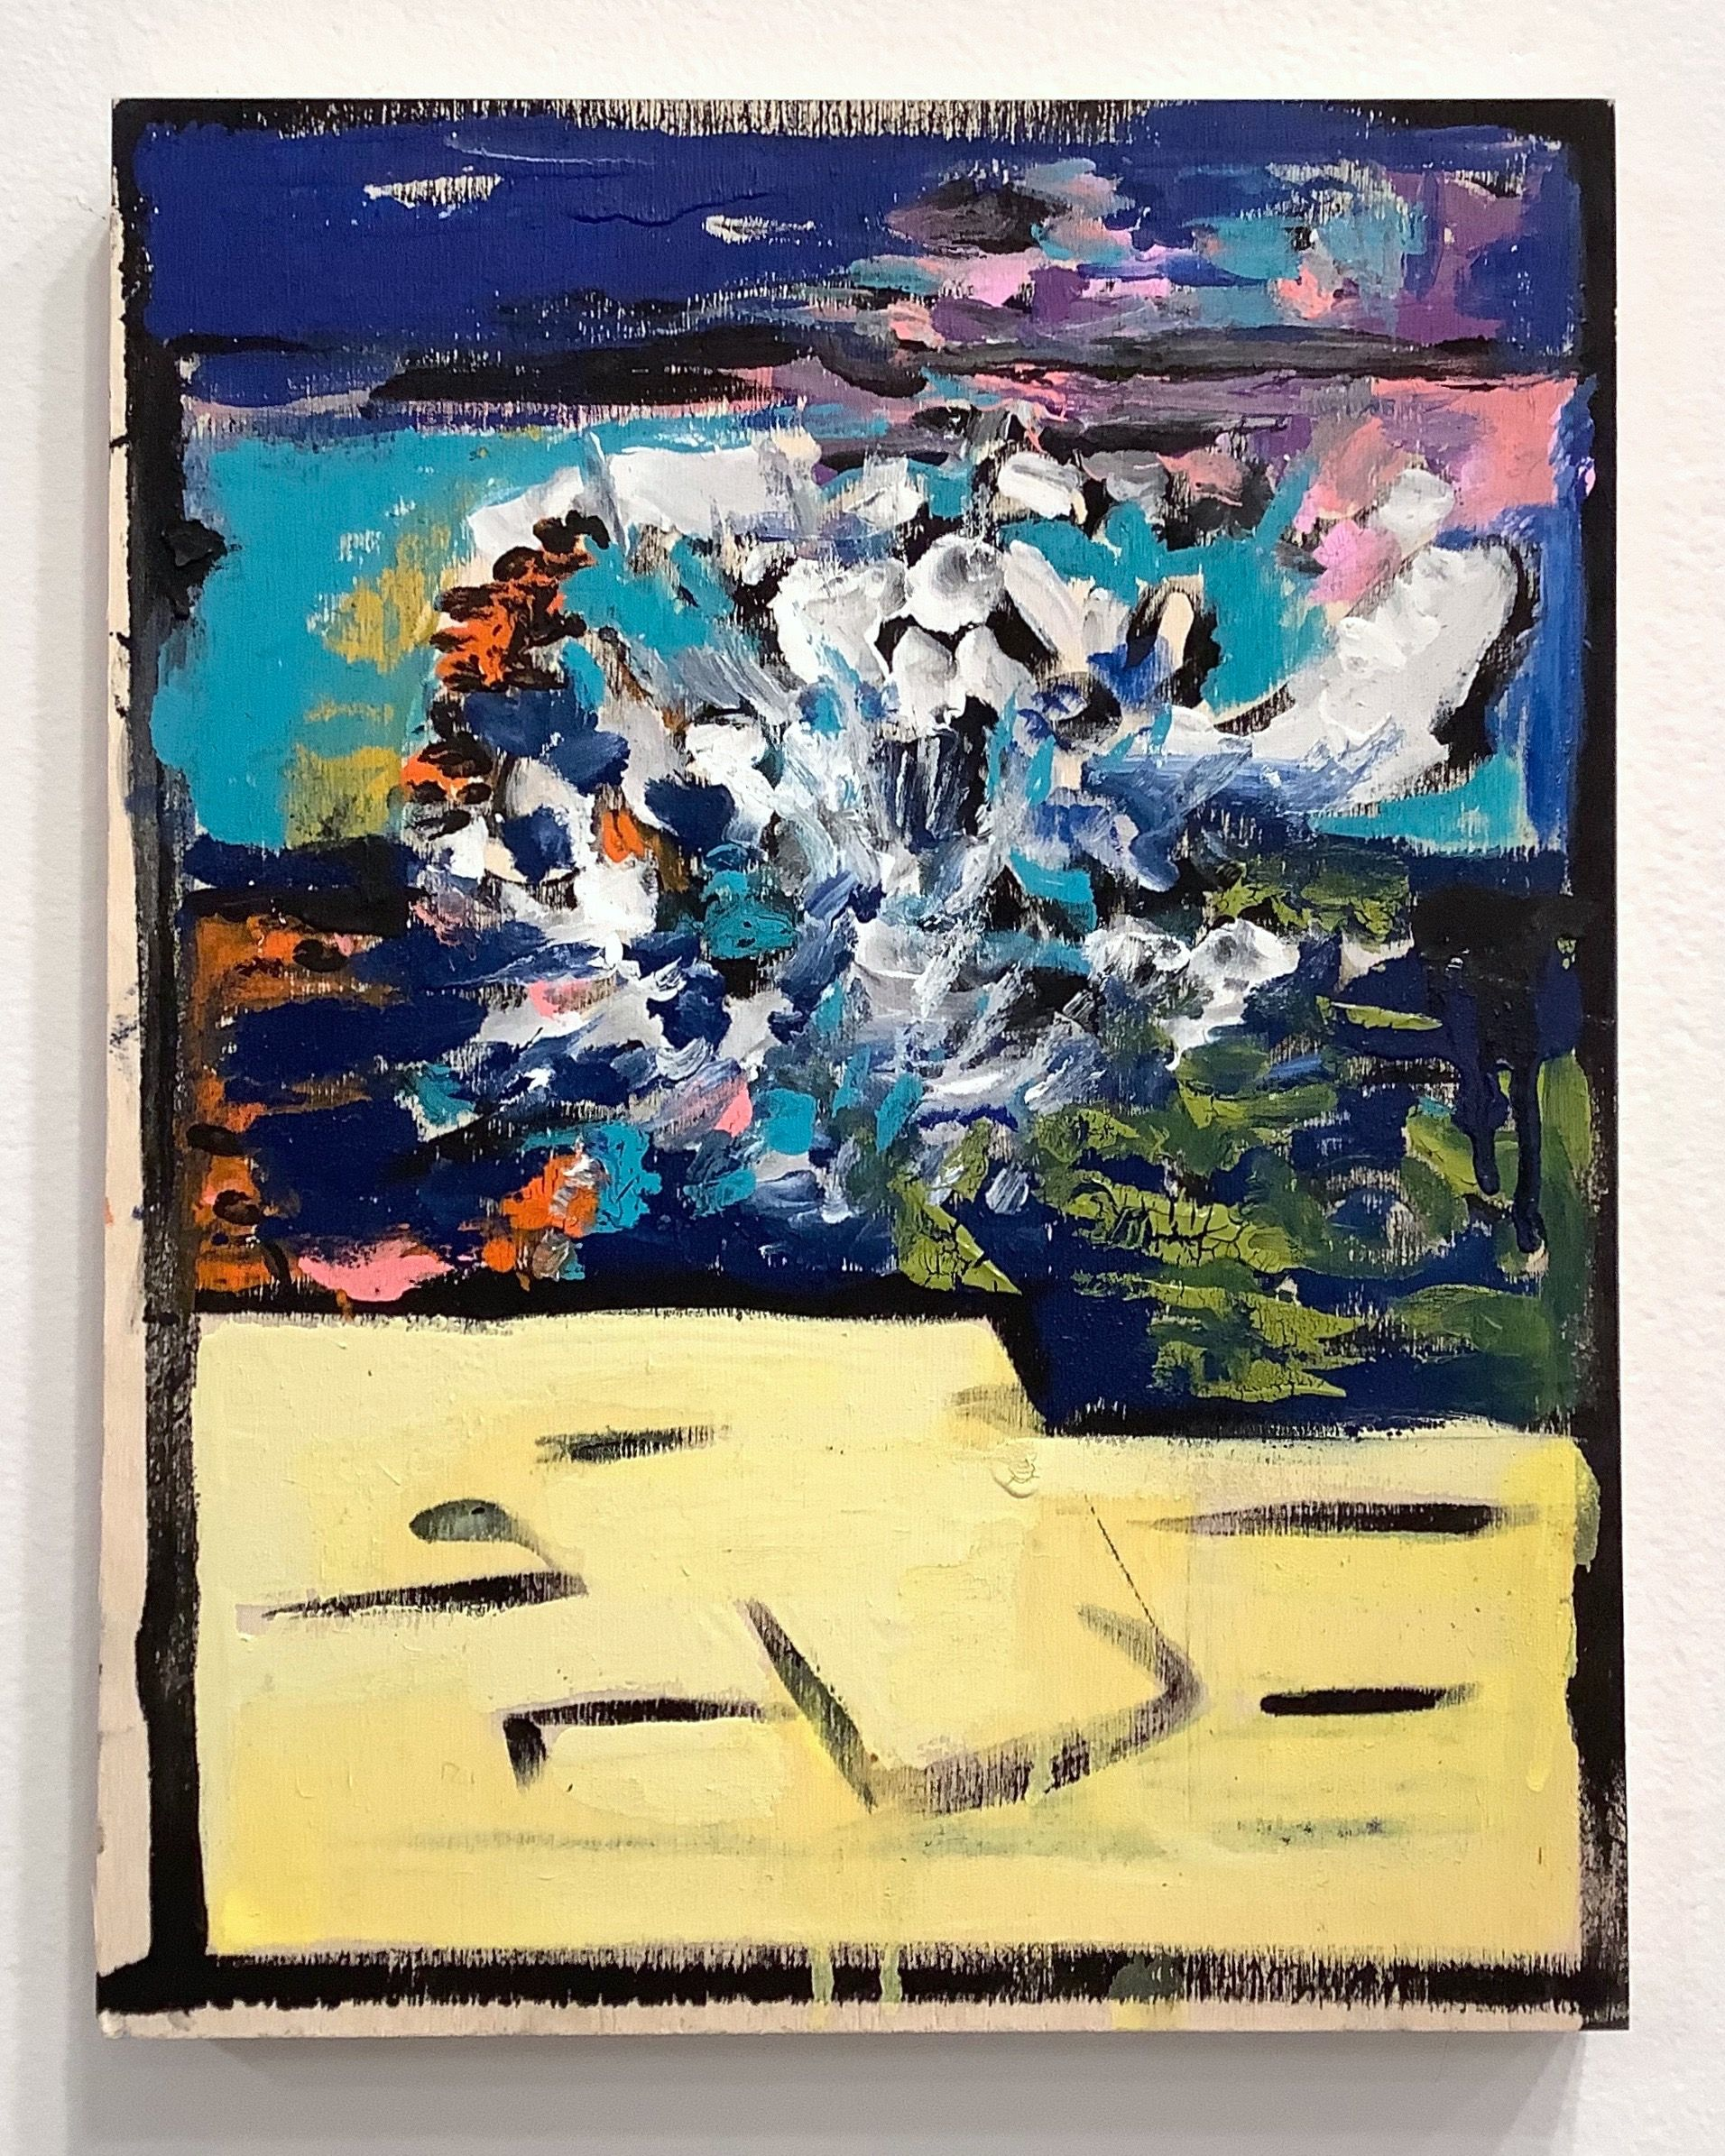 Agathe Snow, Layers, Between Earth and Sky: Sea, 2019 (